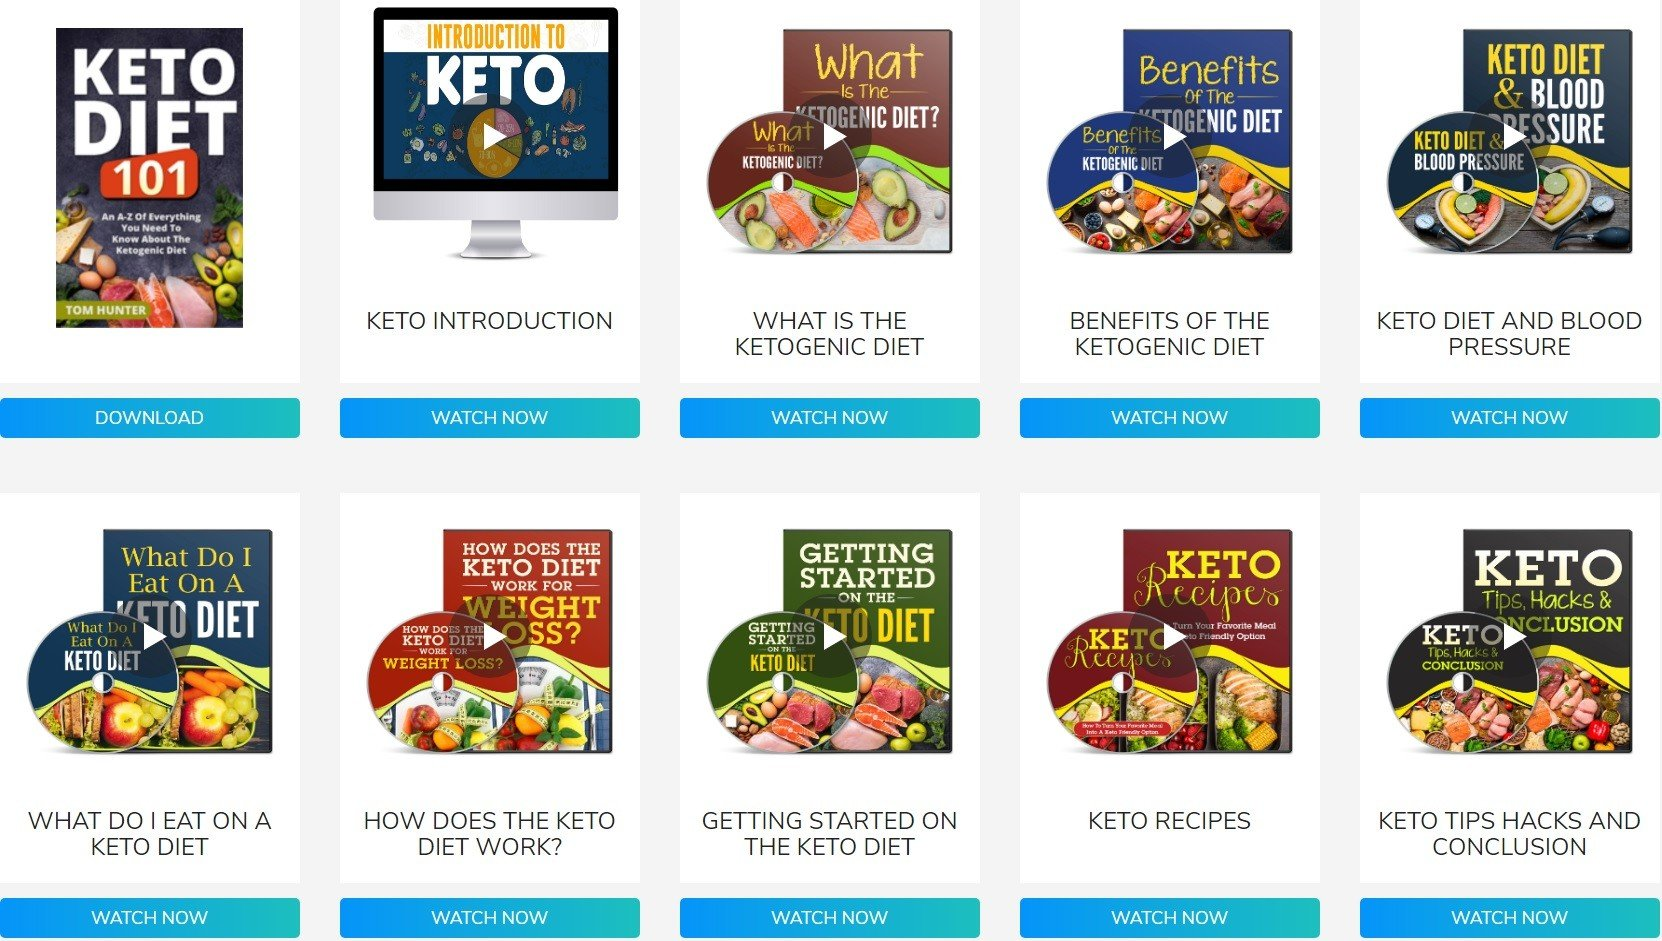 30 Day Keto Fix Cookbook